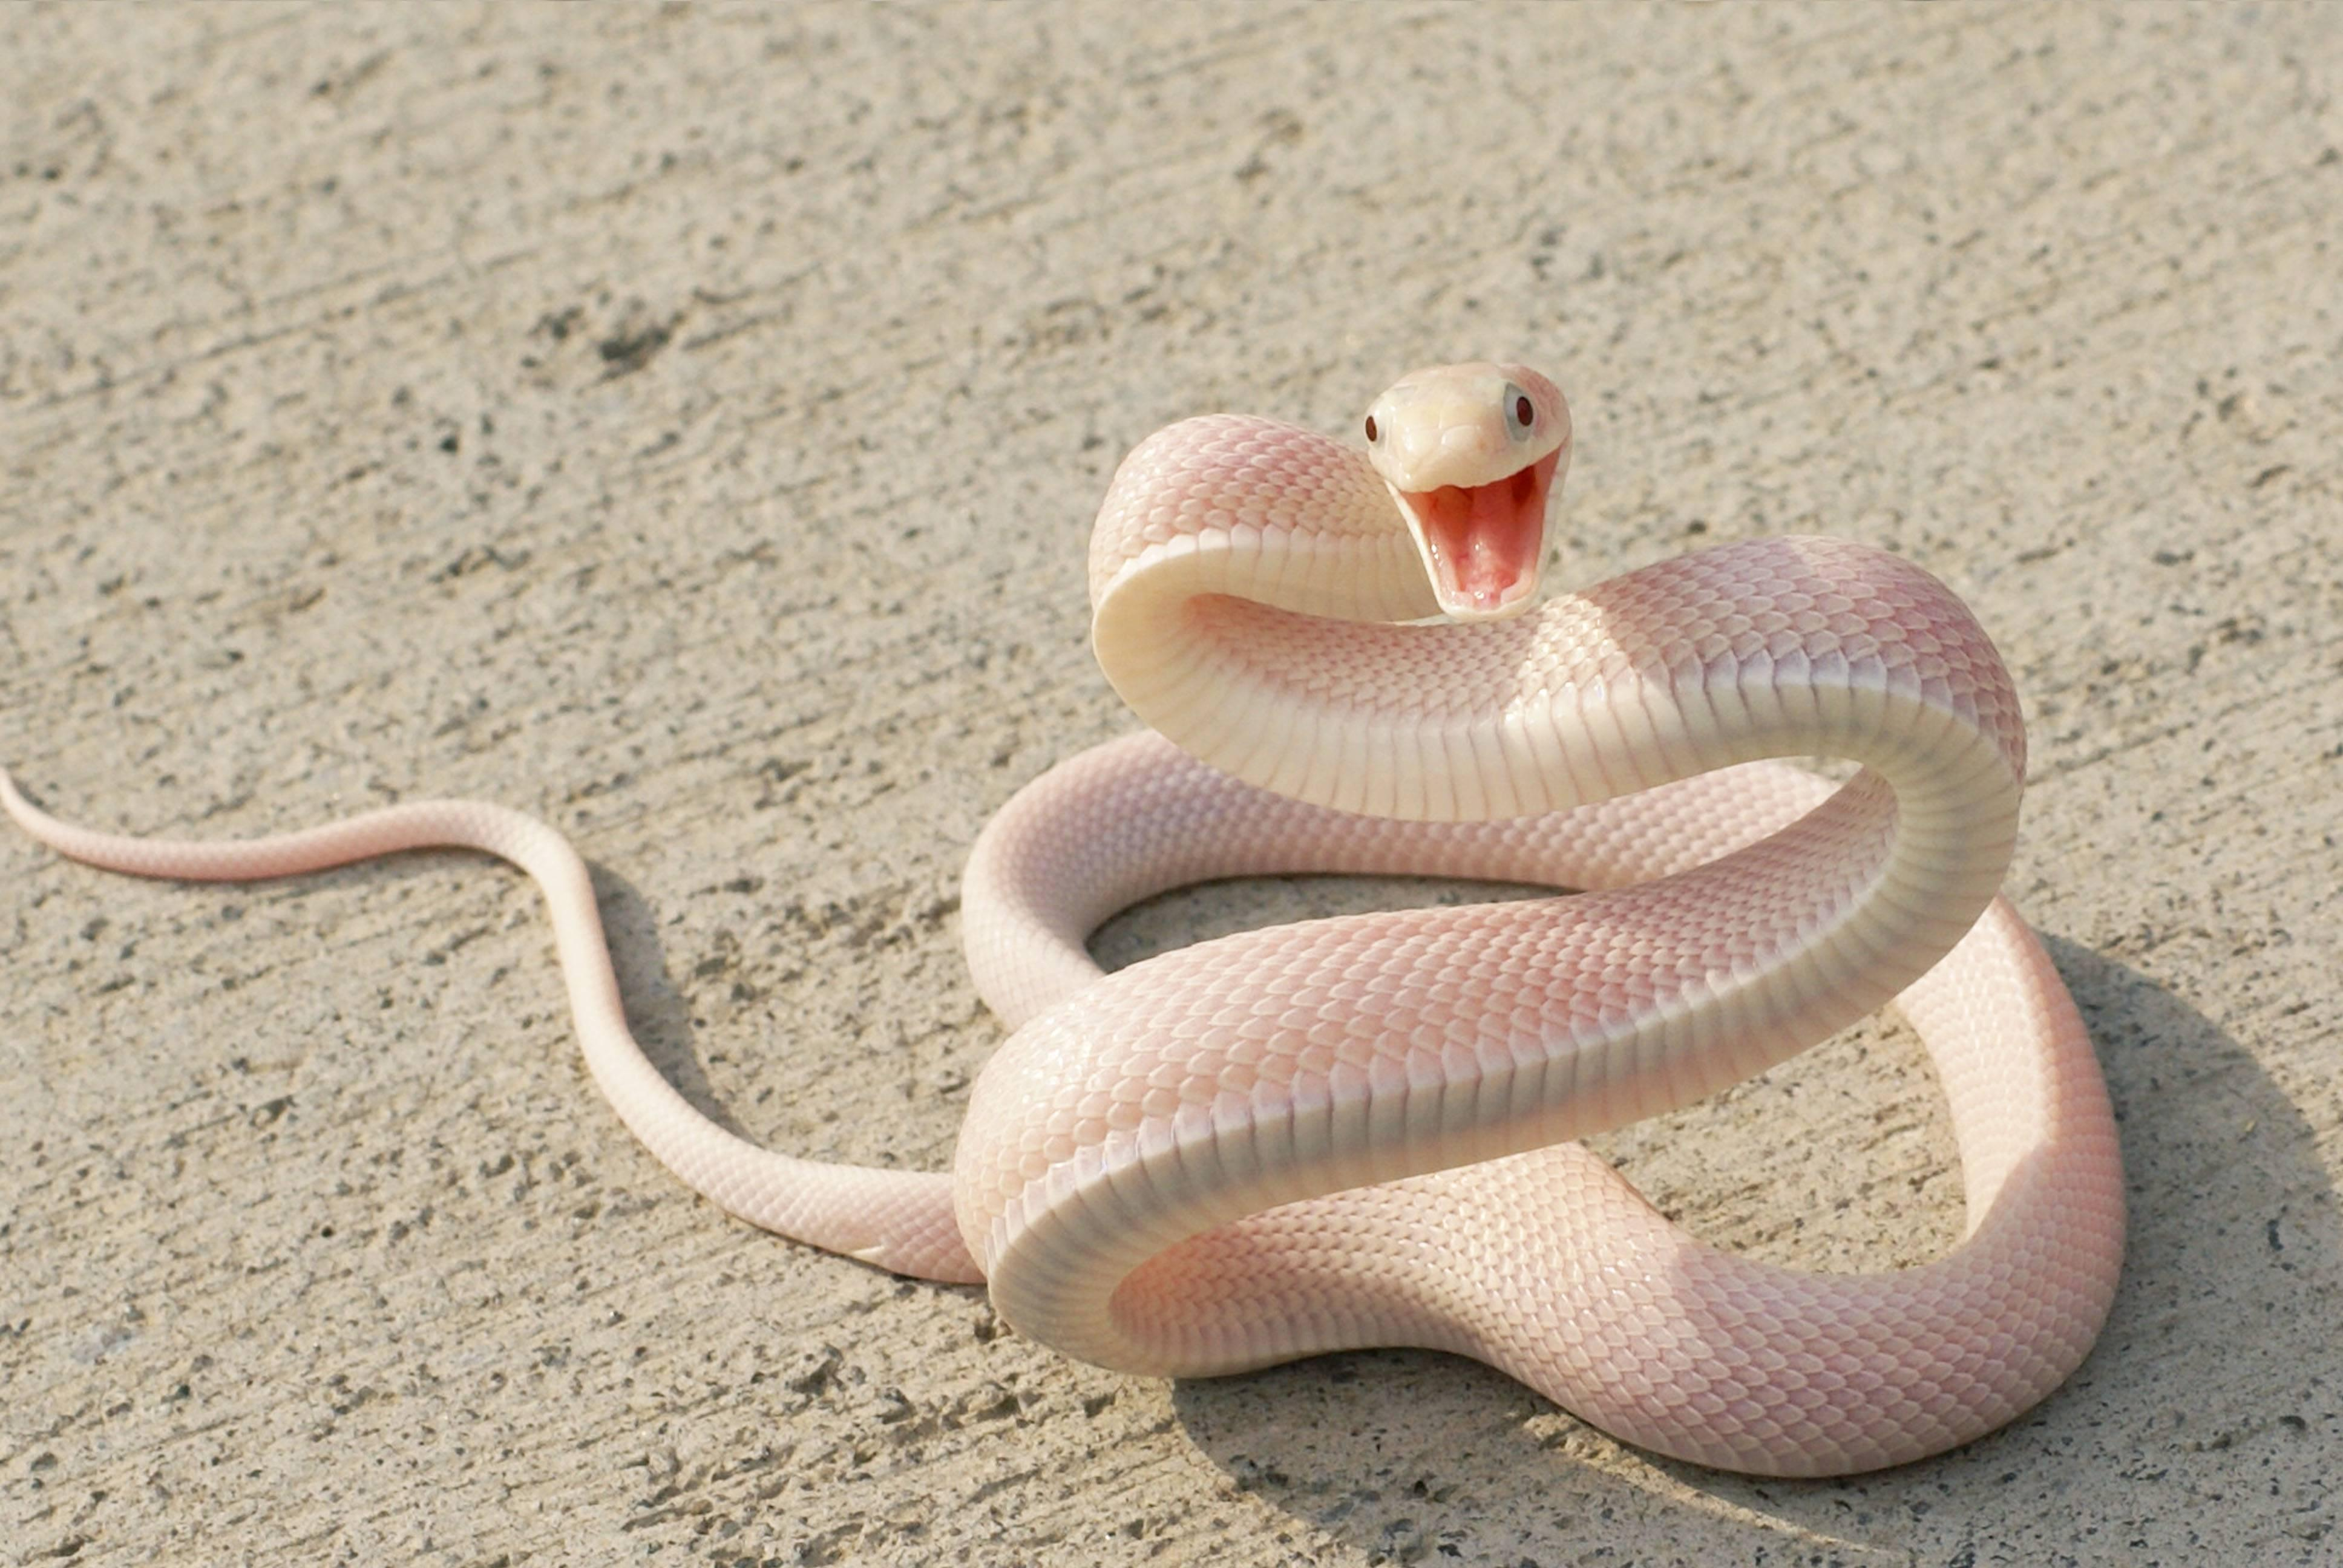 Snake Ready To Attack , HD Wallpaper & Backgrounds